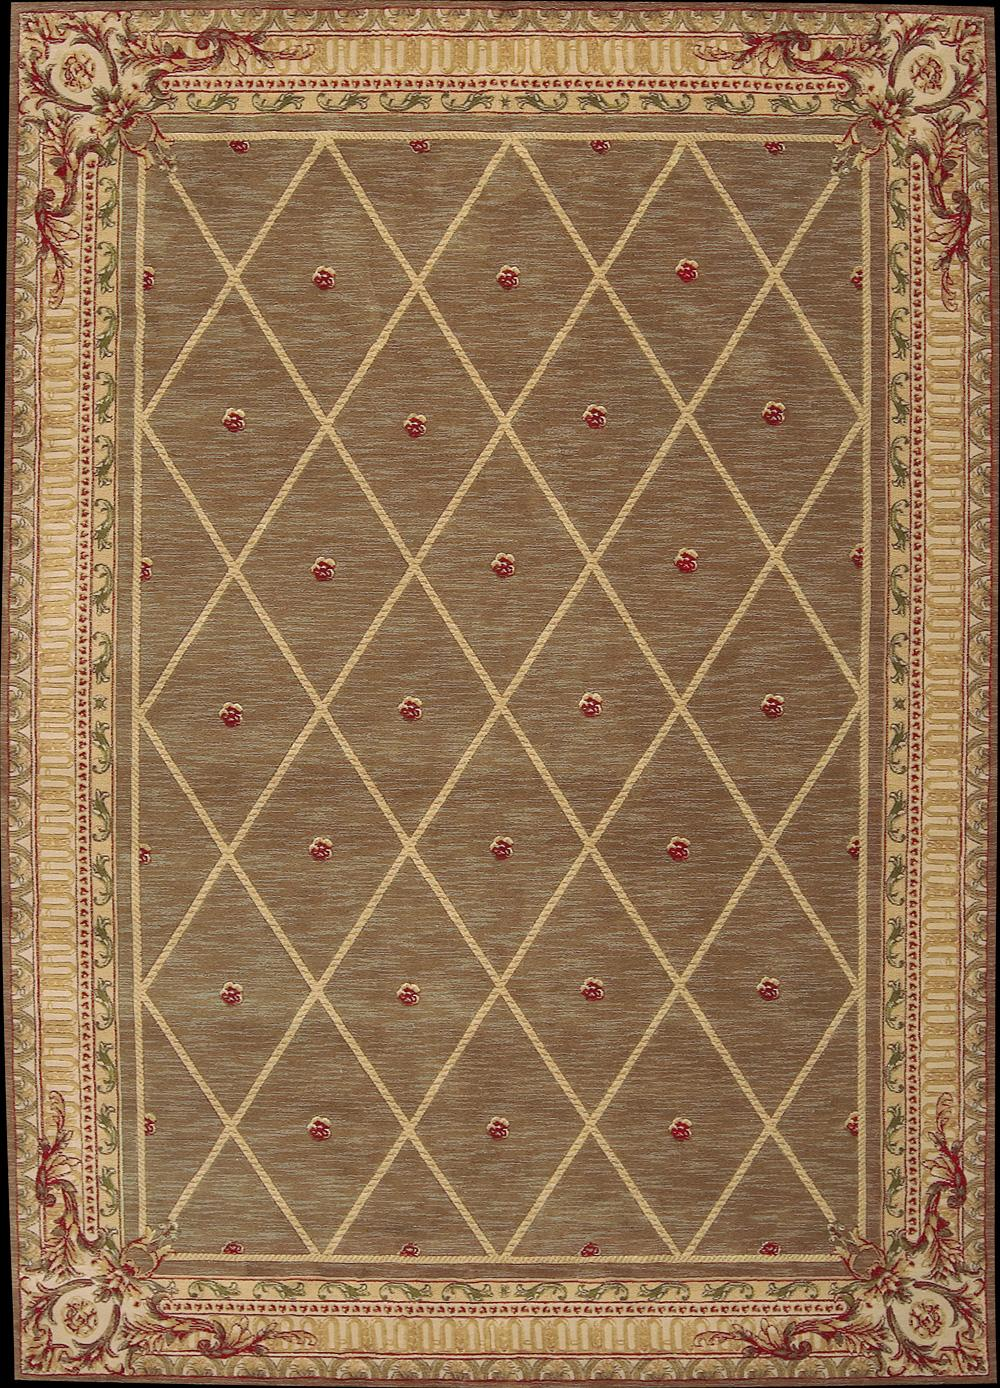 "Nourison Ashton House Area Rug 3'6"" x 5'6"" - Item Number: 32029"